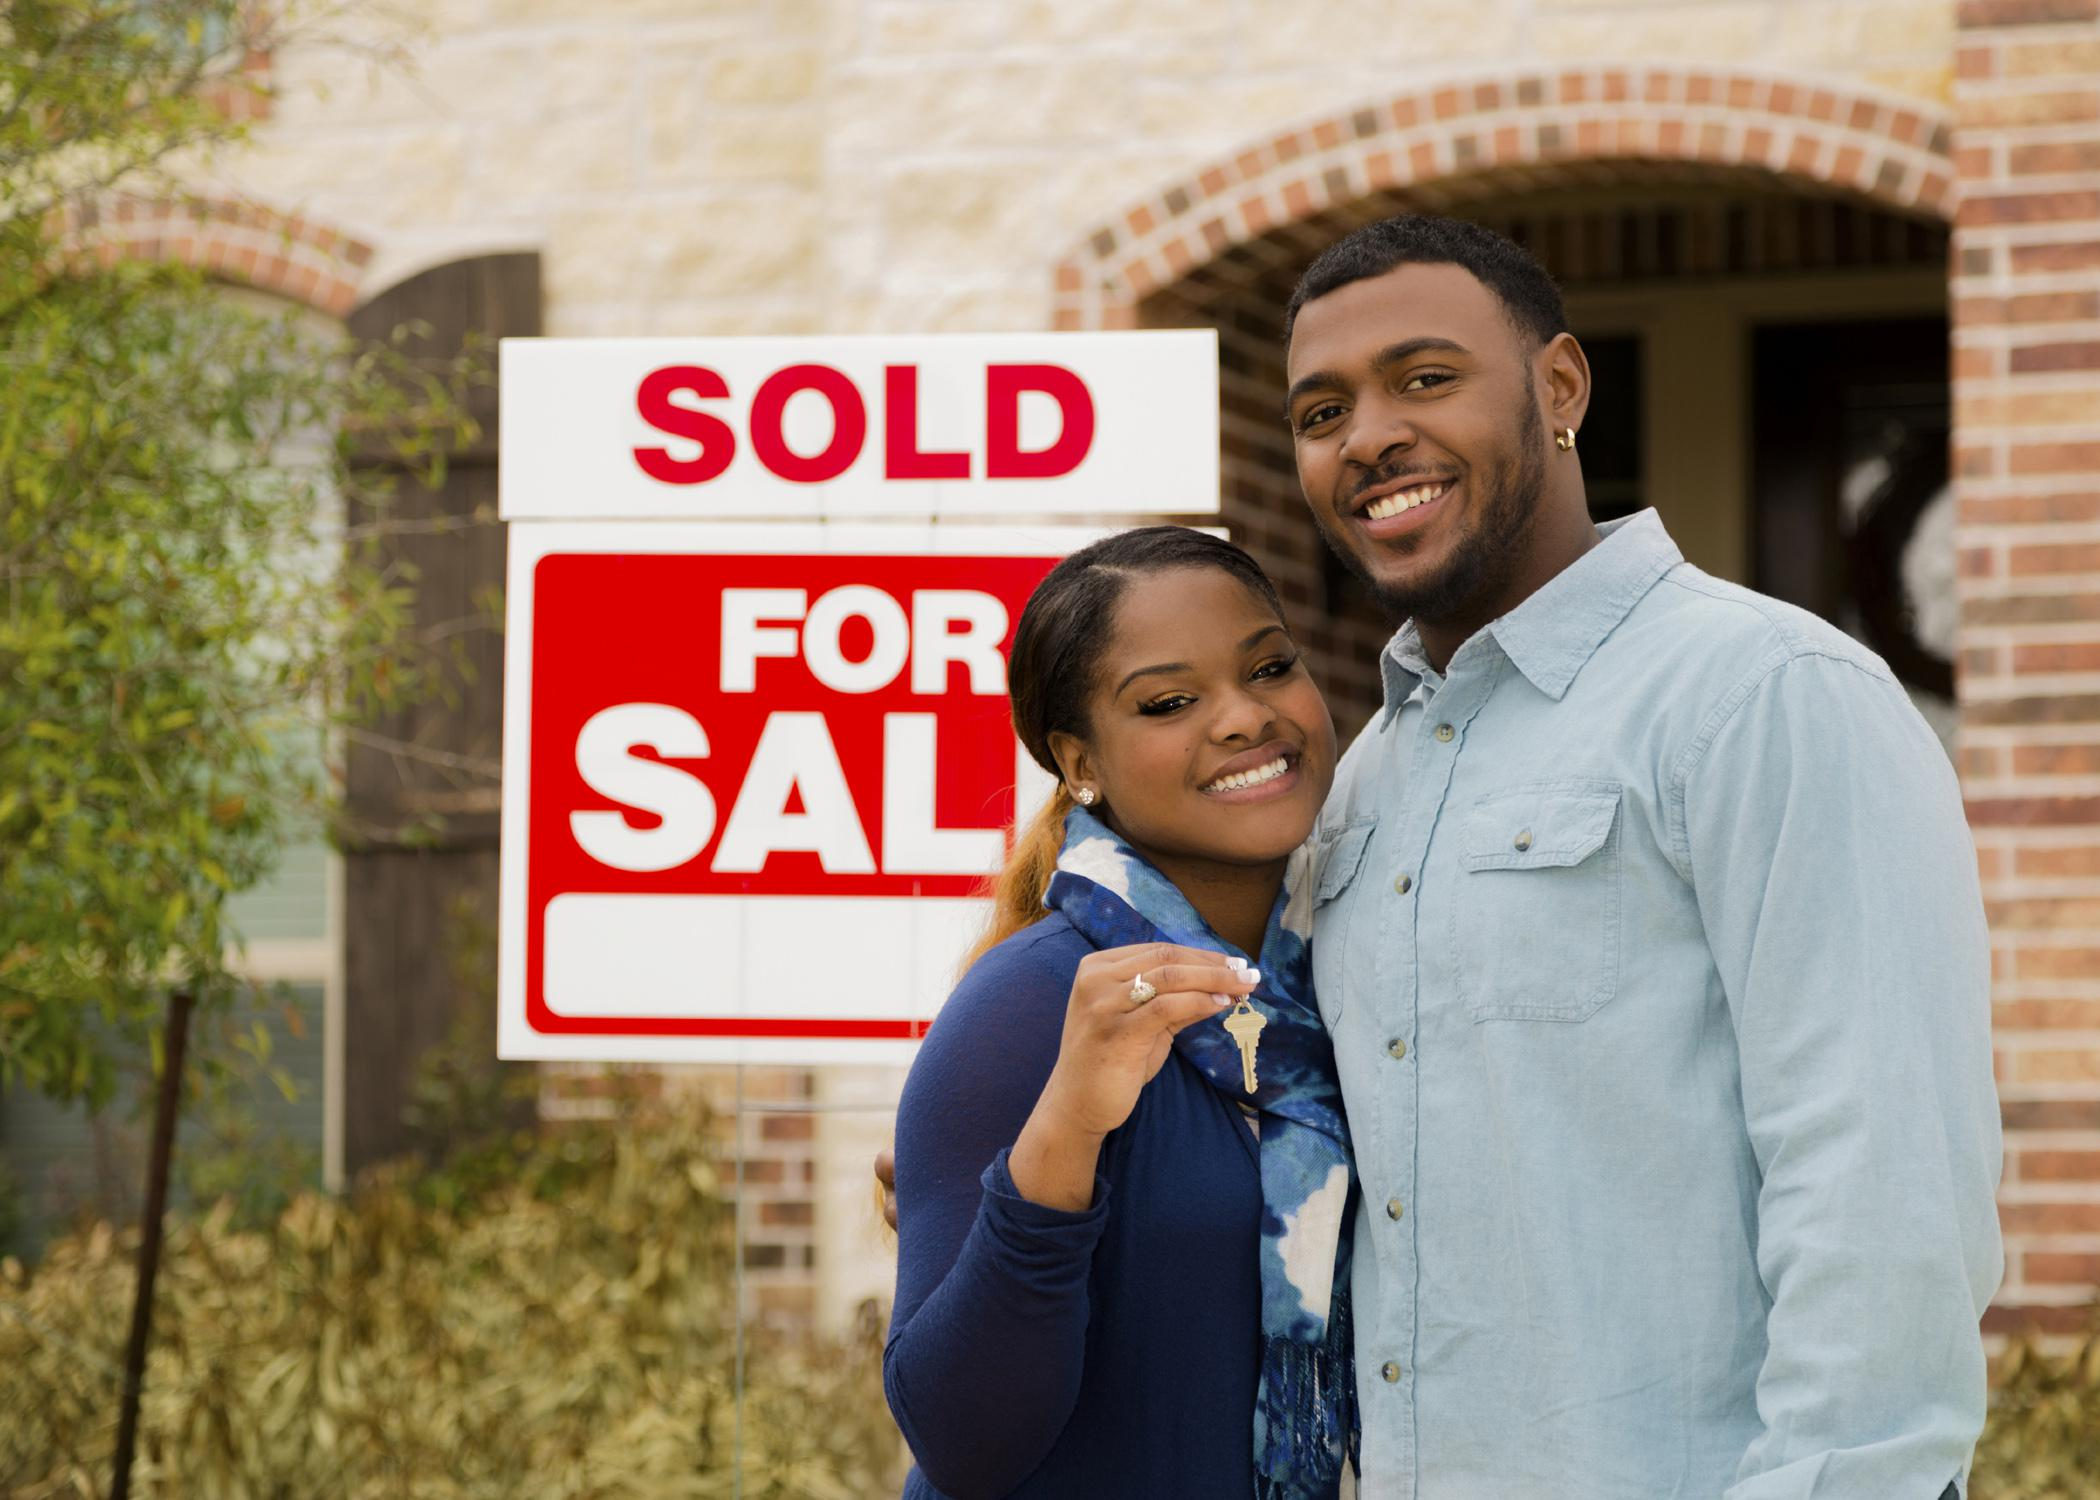 Newlywed couples who want to buy their first home should educate themselves on the process and have a written financial plan to follow. (Photo by iStock)